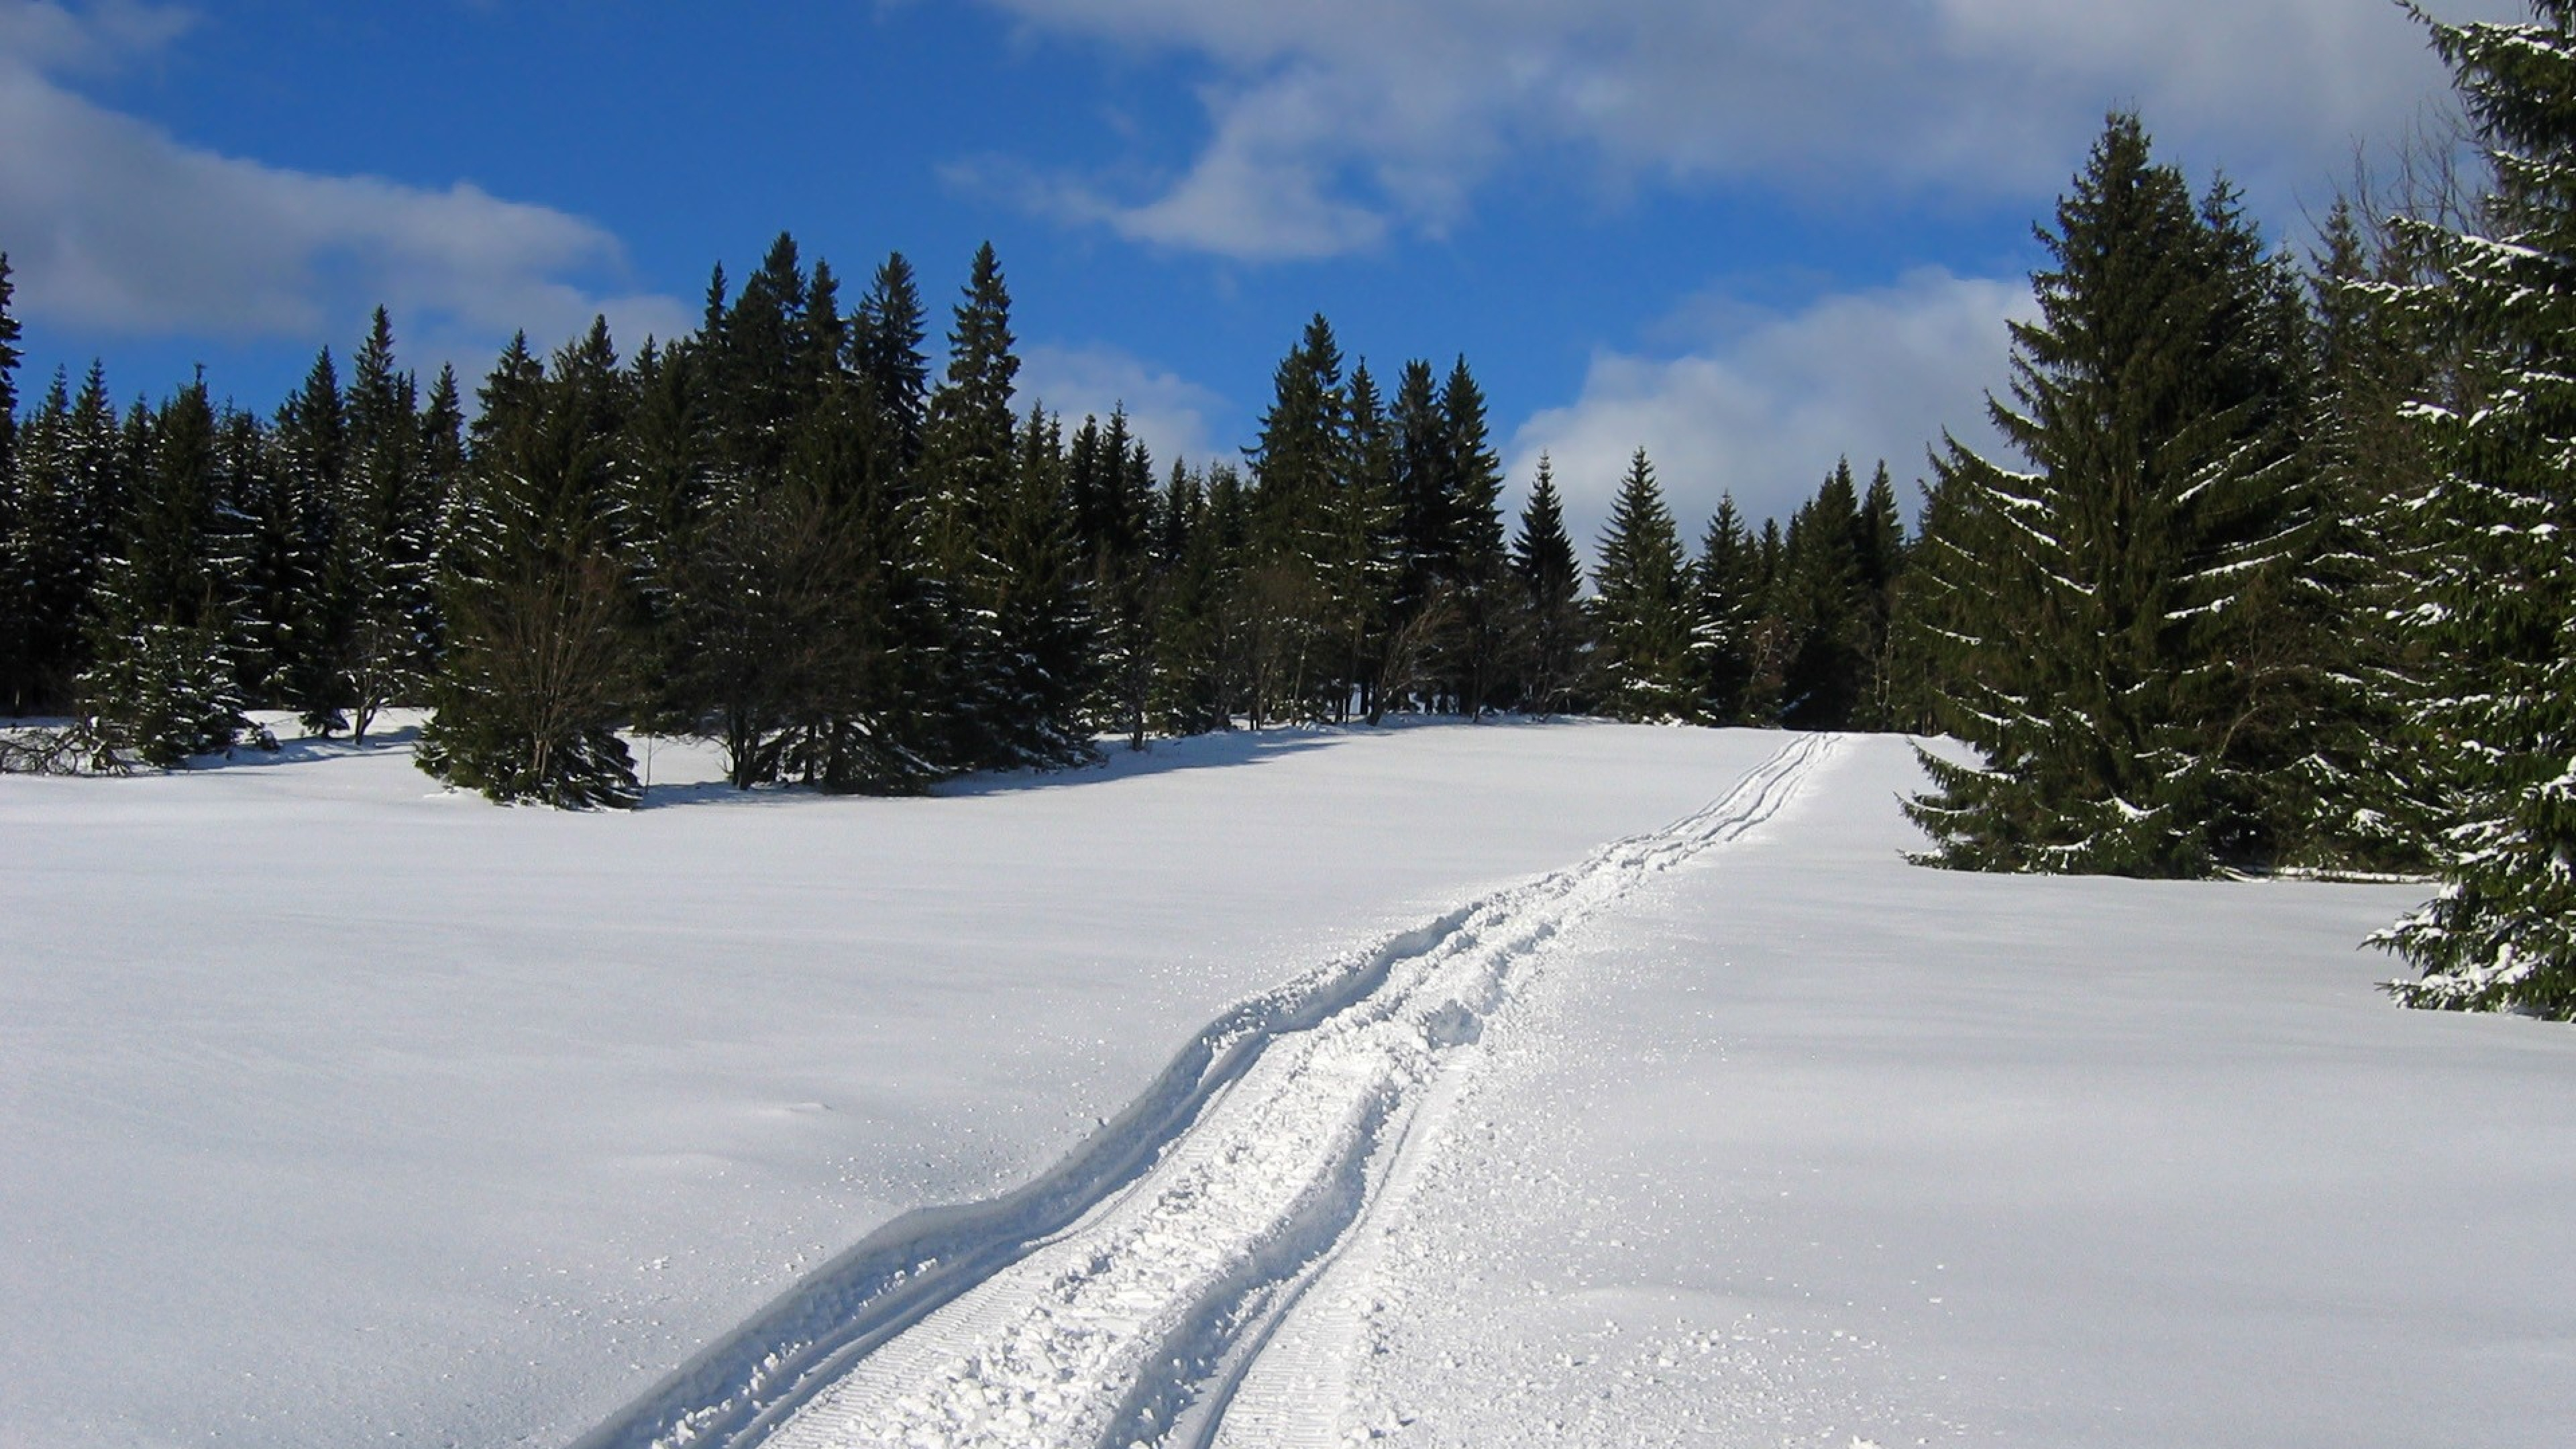 Download Wallpaper 3840x2160 Snow Trail Winter 4K Ultra HD HD 3840x2160